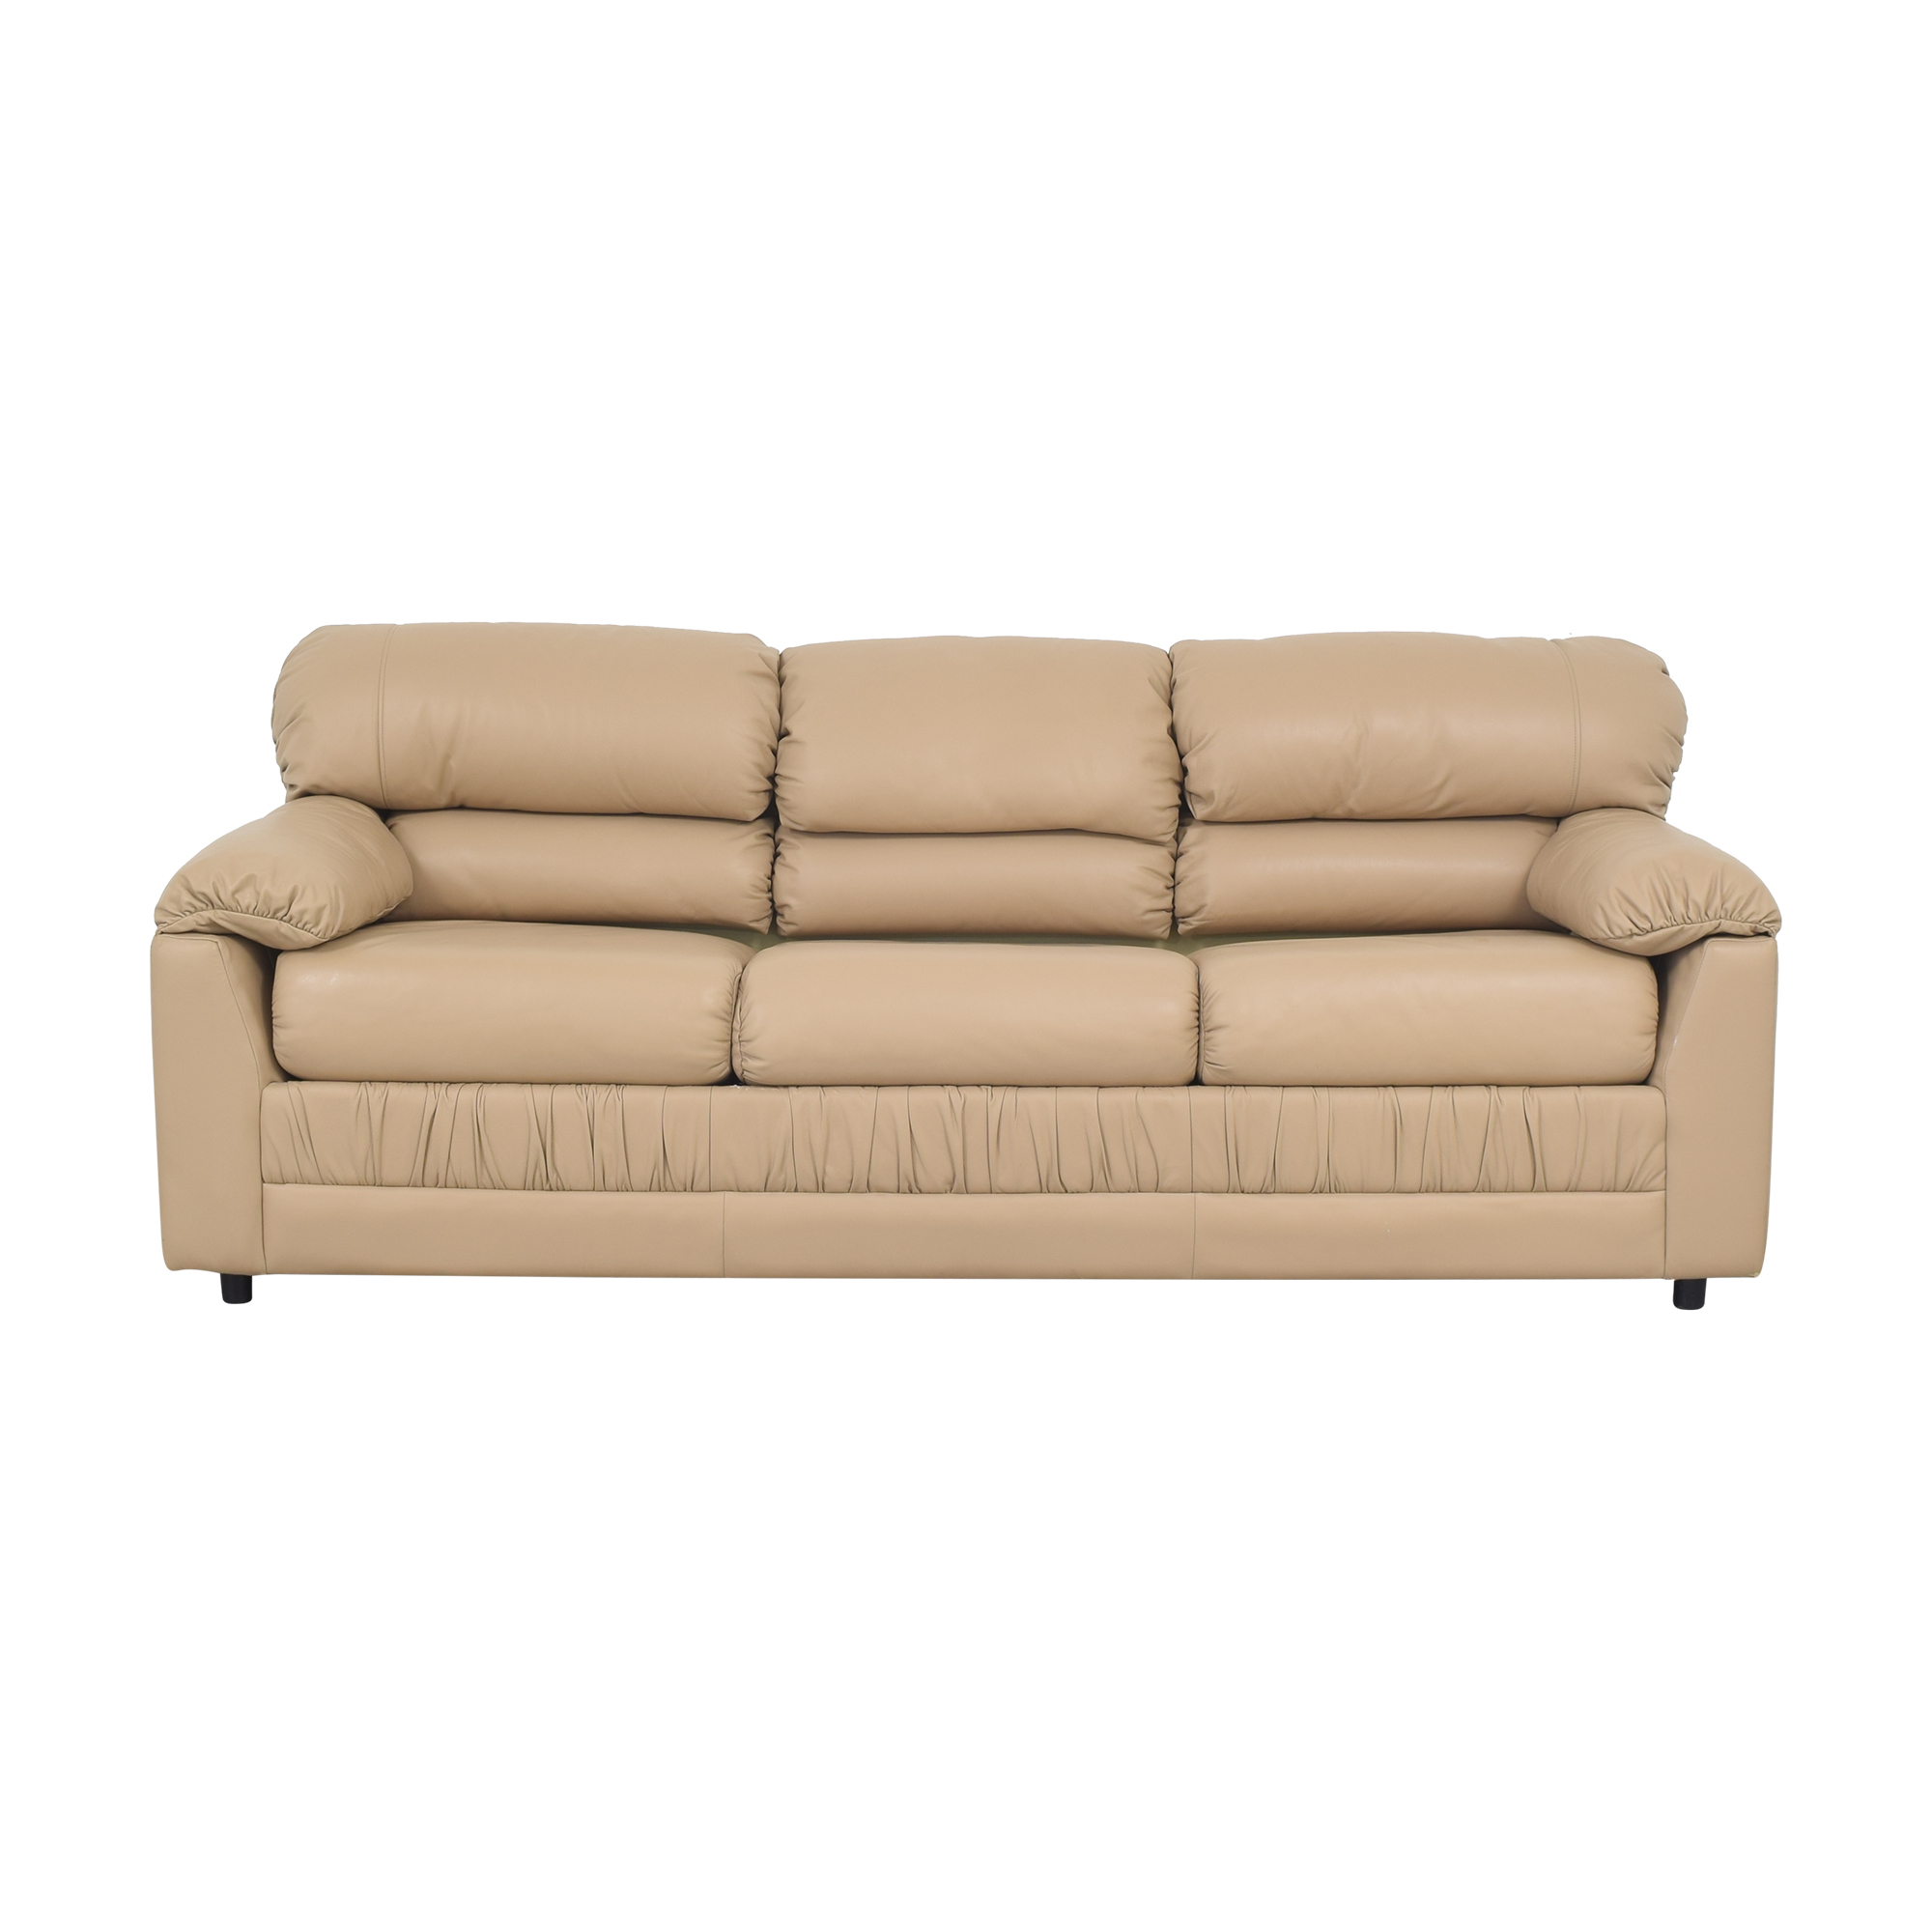 Castro Convertibles Castro Convertibles Three Cushion Sleeper Sofa dimensions